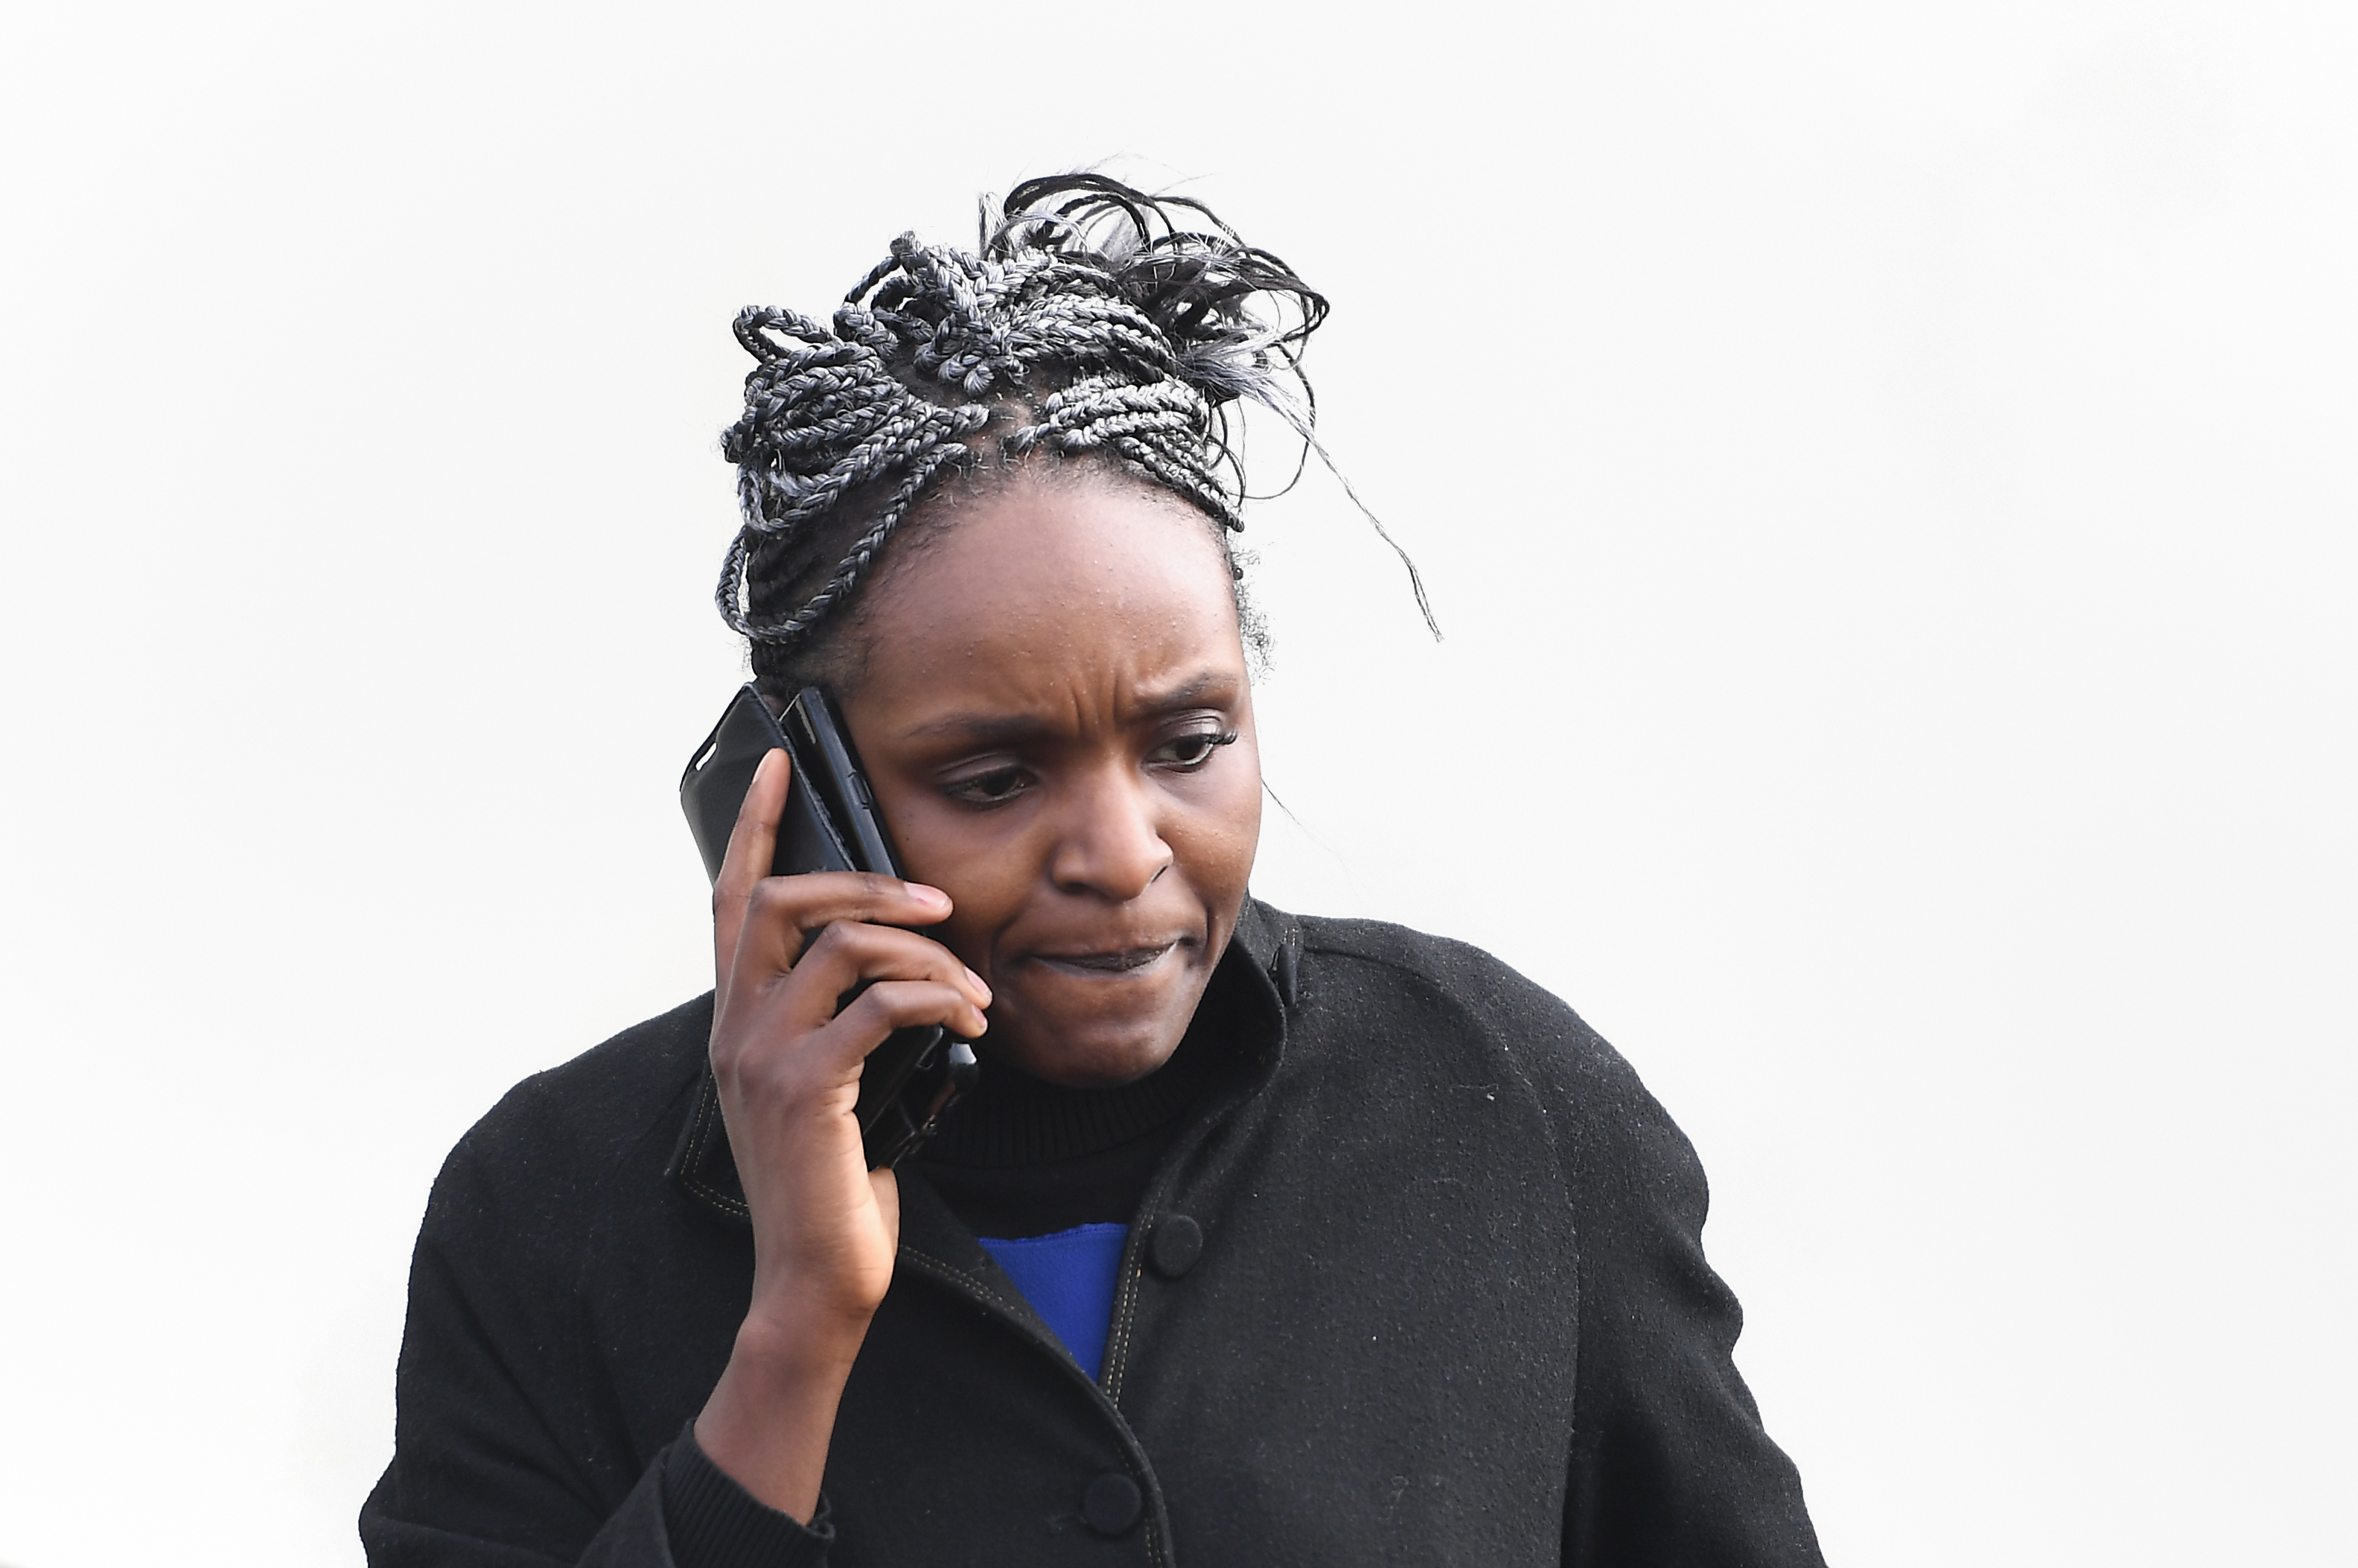 MP Fiona Onasanya outside her home in Peterborough, as voters are being given the opportunity to sign a petition to force a by-election following her conviction for lying about a speeding offence.